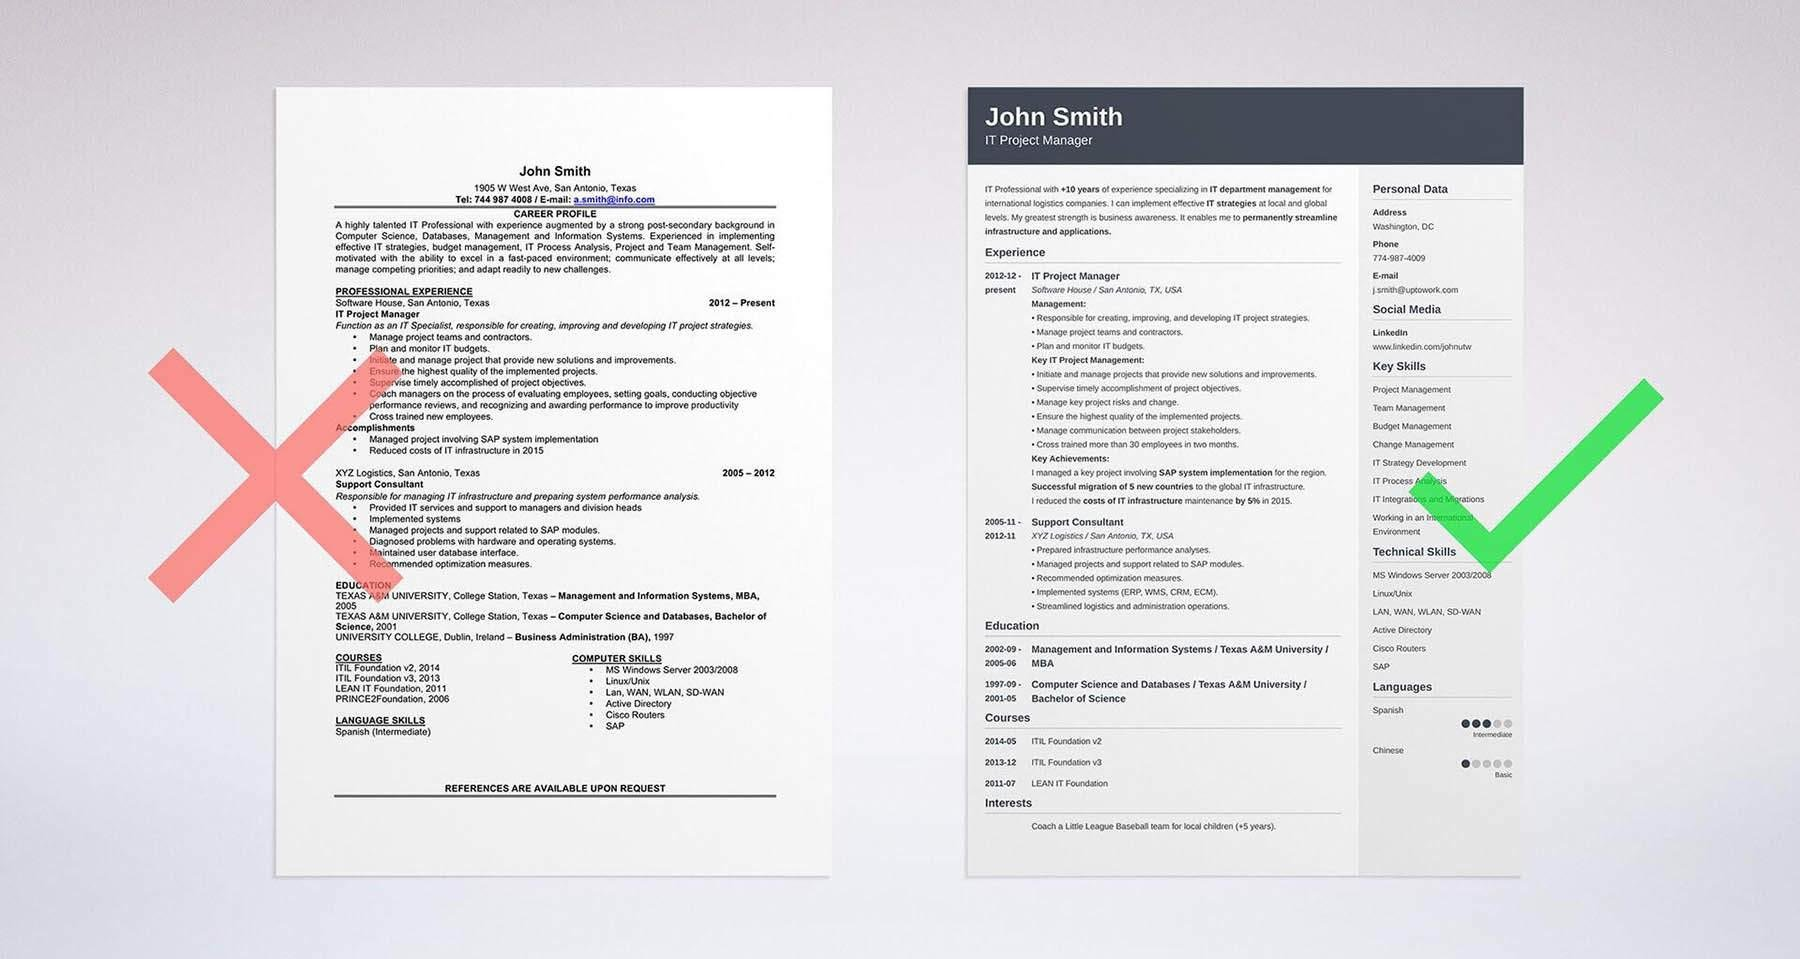 Perfect Highlight Your Resume Objective With Our Templates   Create Your Resume In  5 Minutes Here.